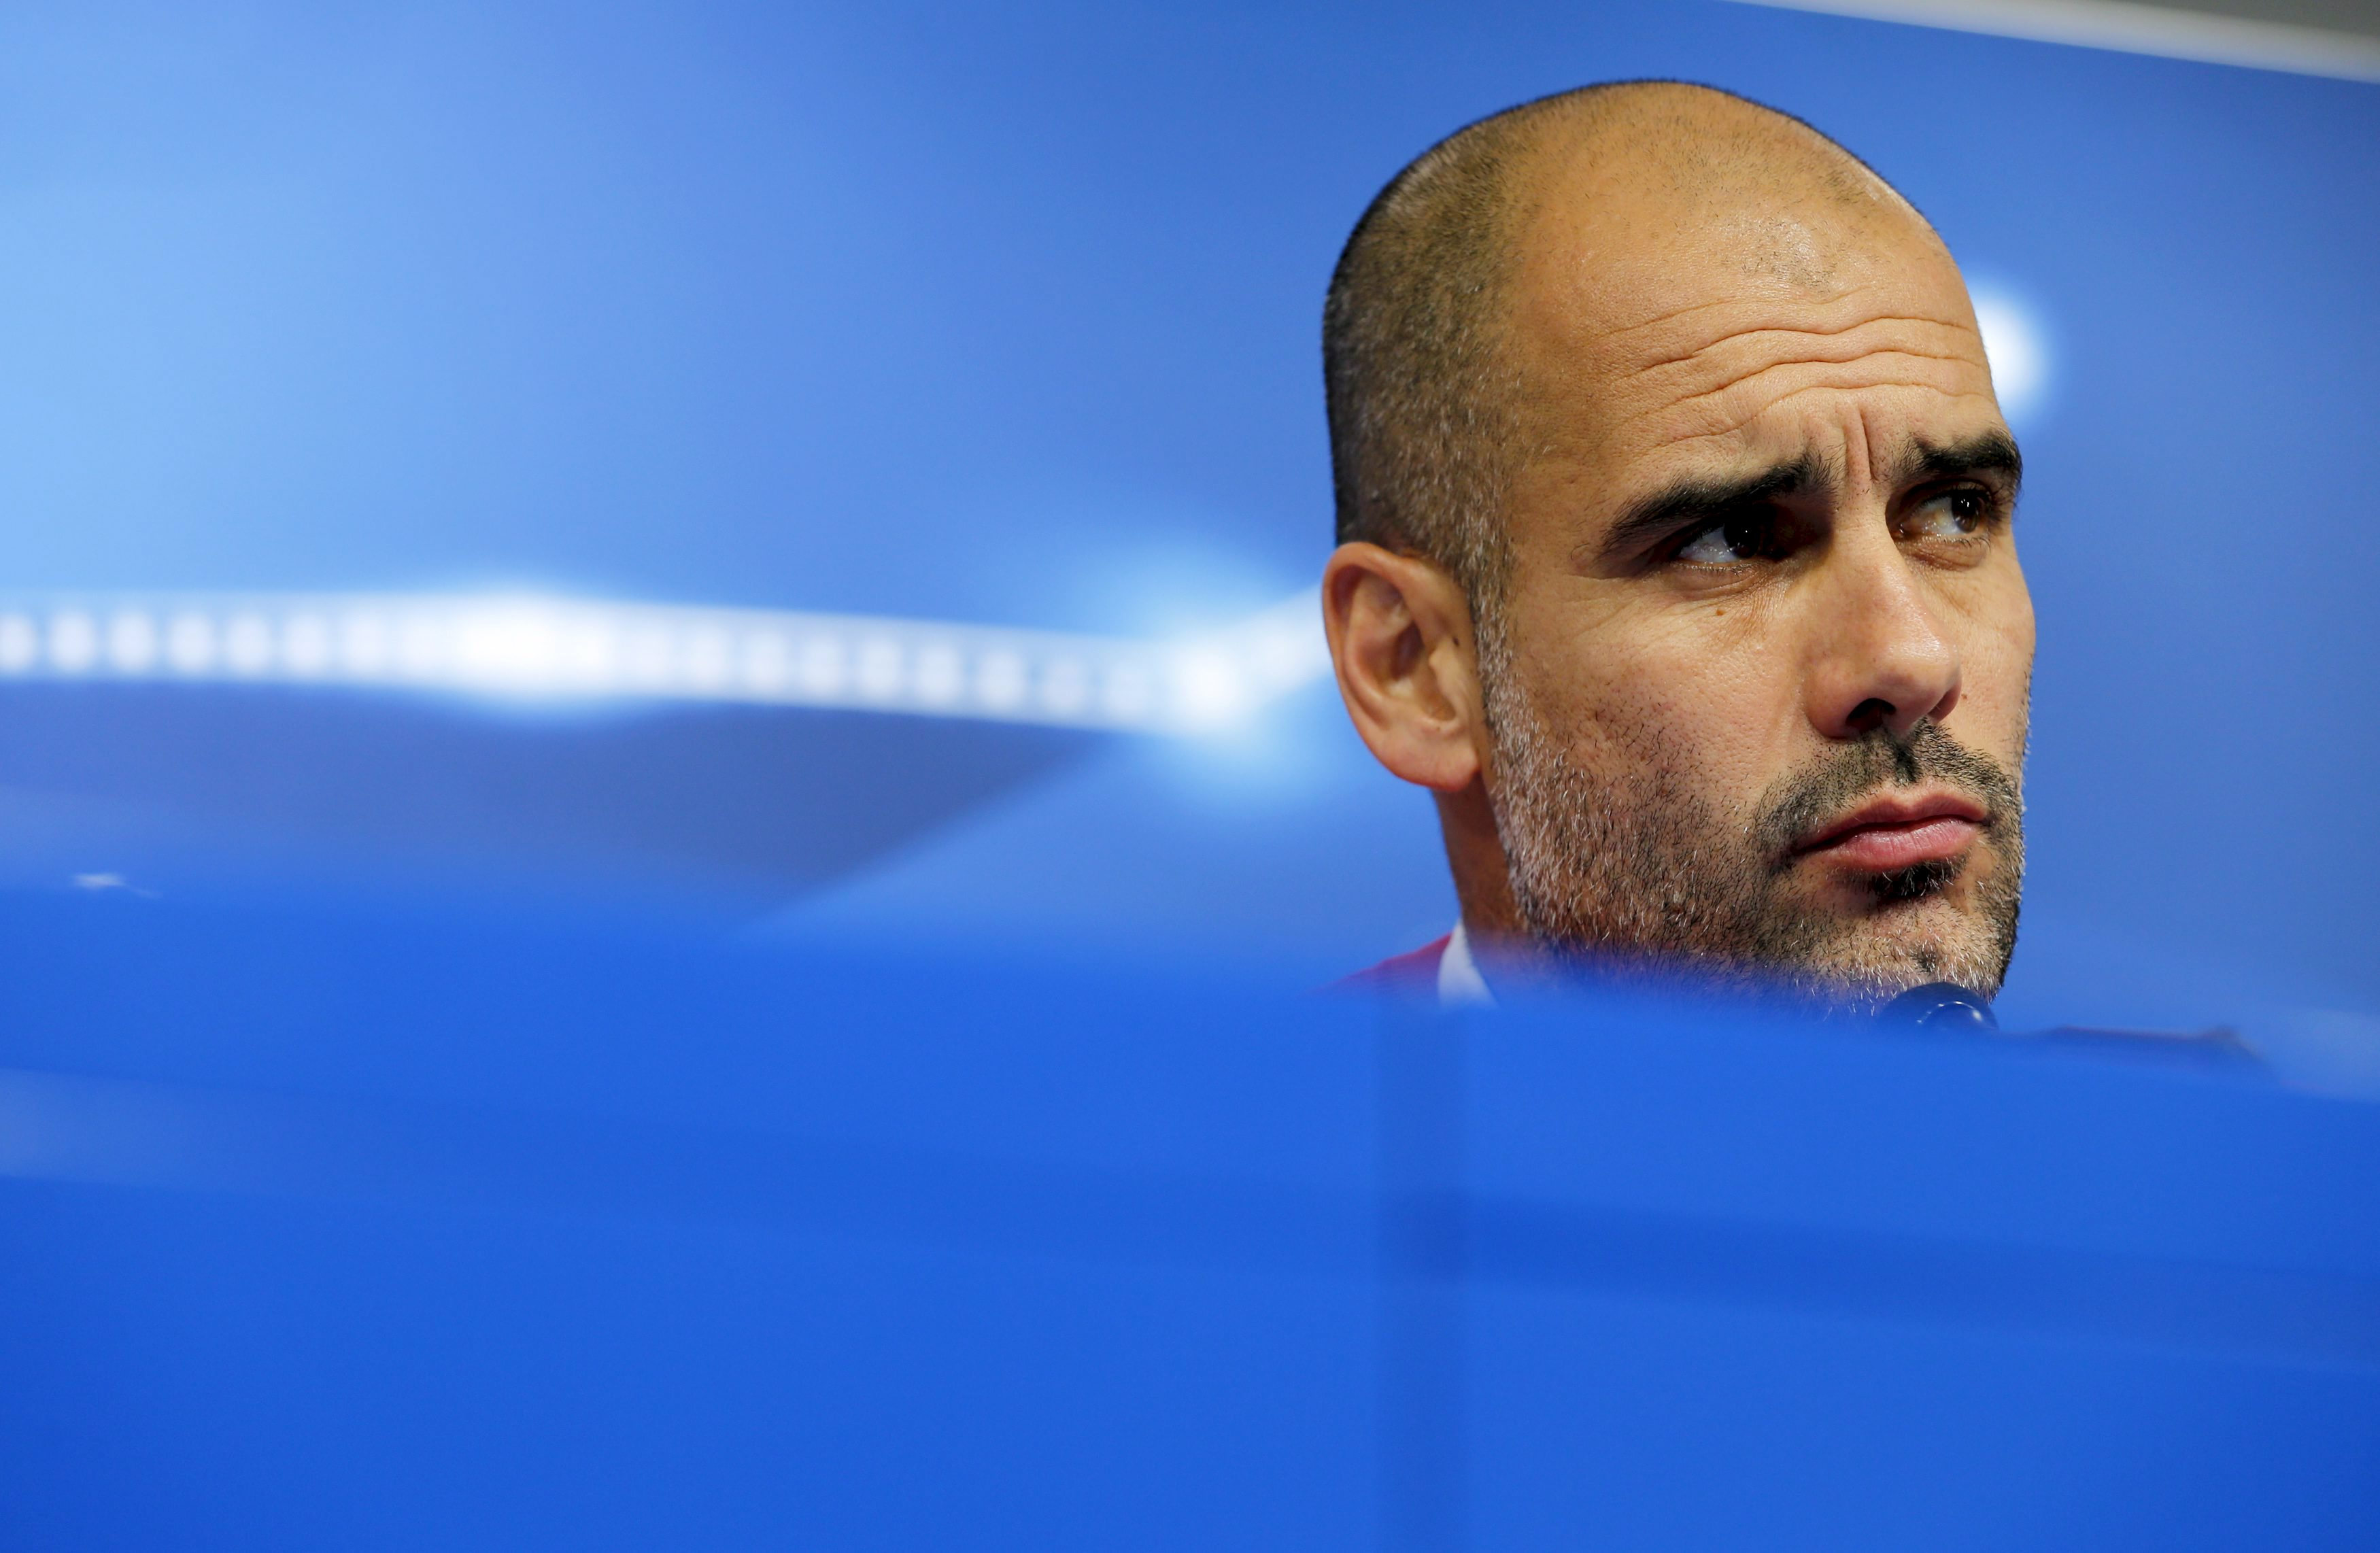 Bayern Munich's coach Pep Guardiola attends a news conference on the eve of their UEFA Champions League soccer match against Dinamo Zagreb at Maksimir Stadium, Zagreb, Croatia on December 12, 2015. Photo: Reuters